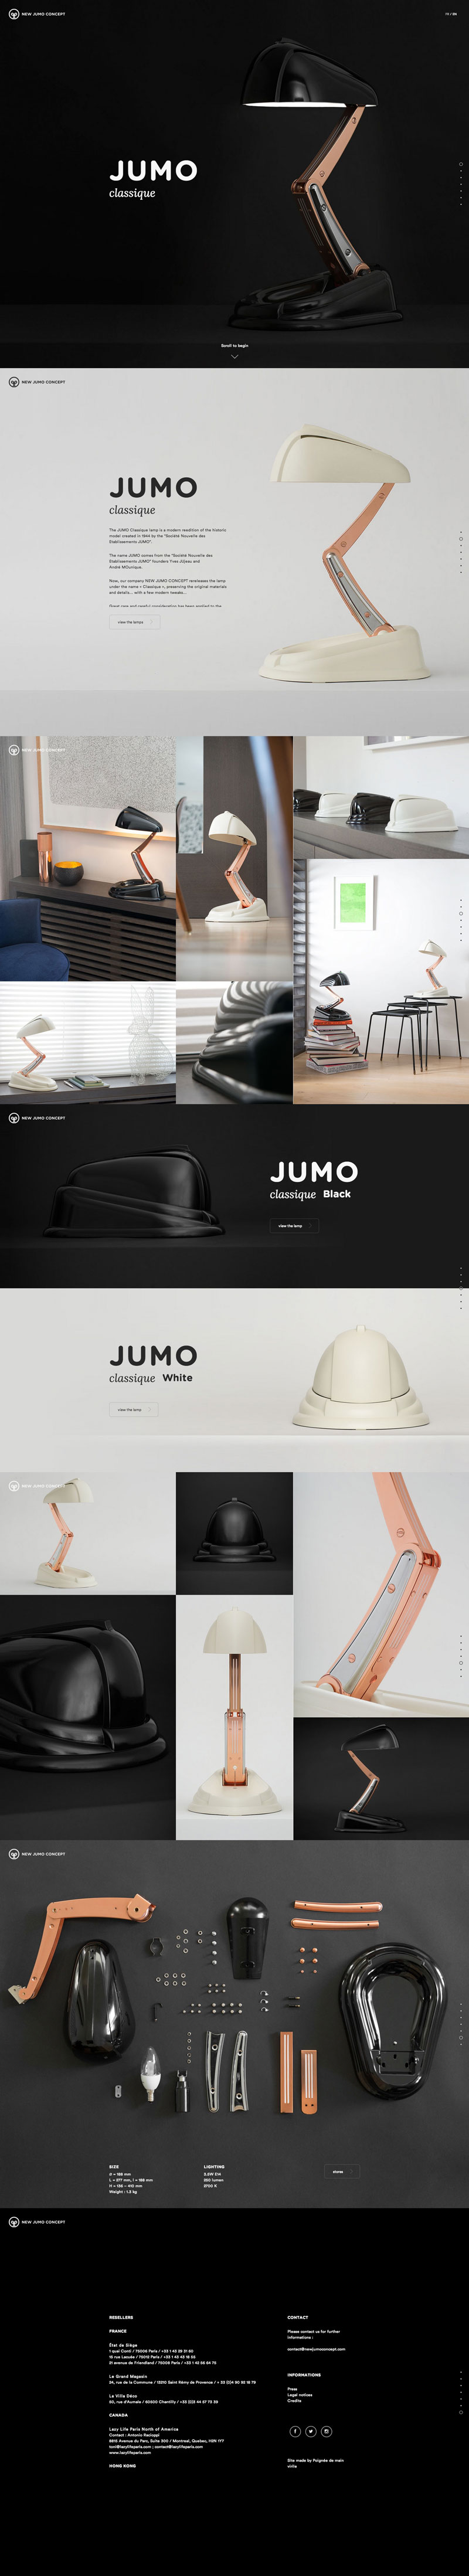 Jumo Lamp Product Web Inspiration